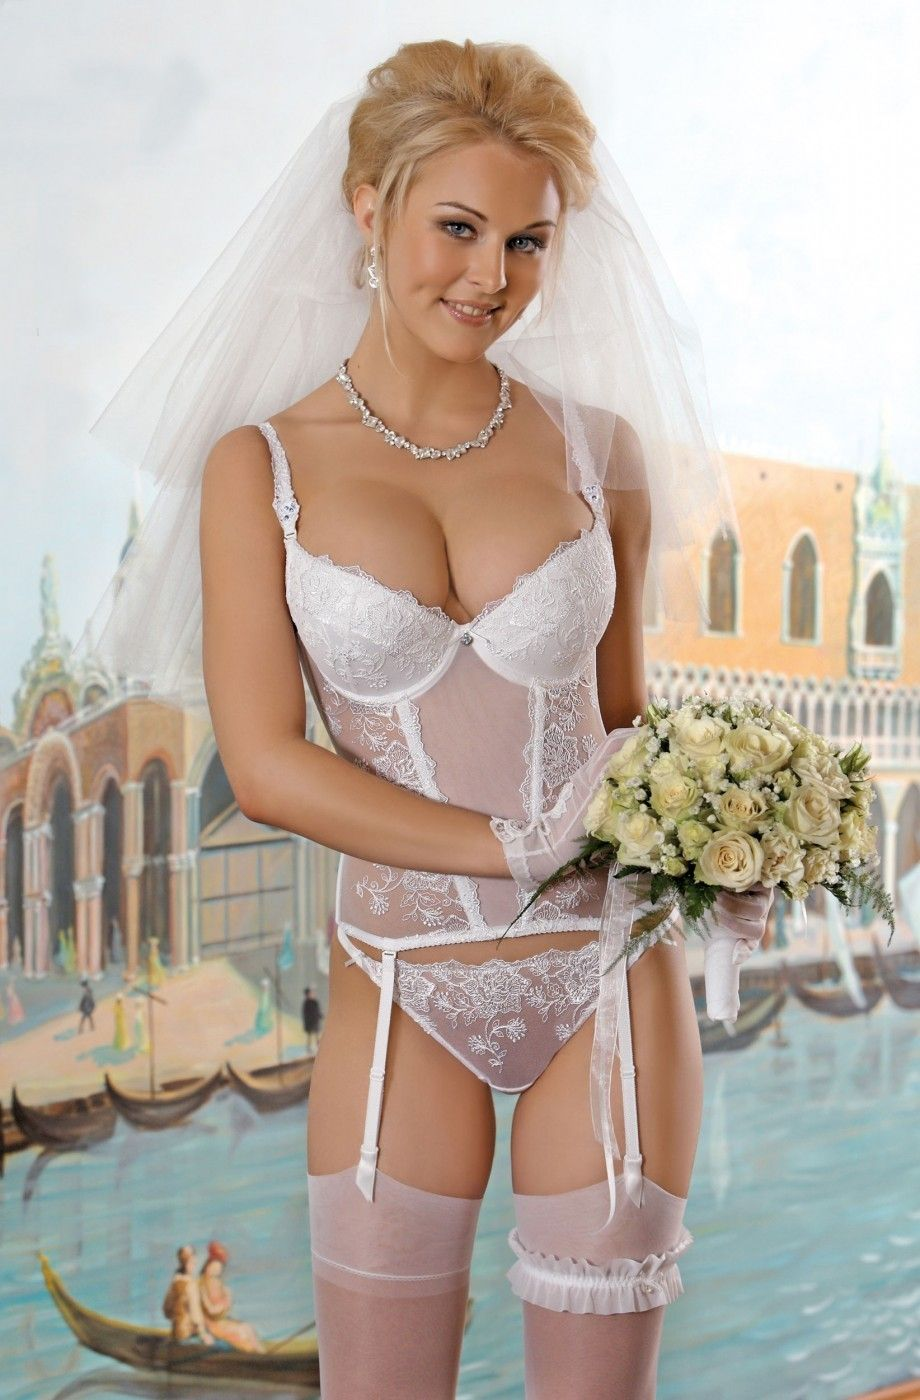 Tops exposed stocking Brides